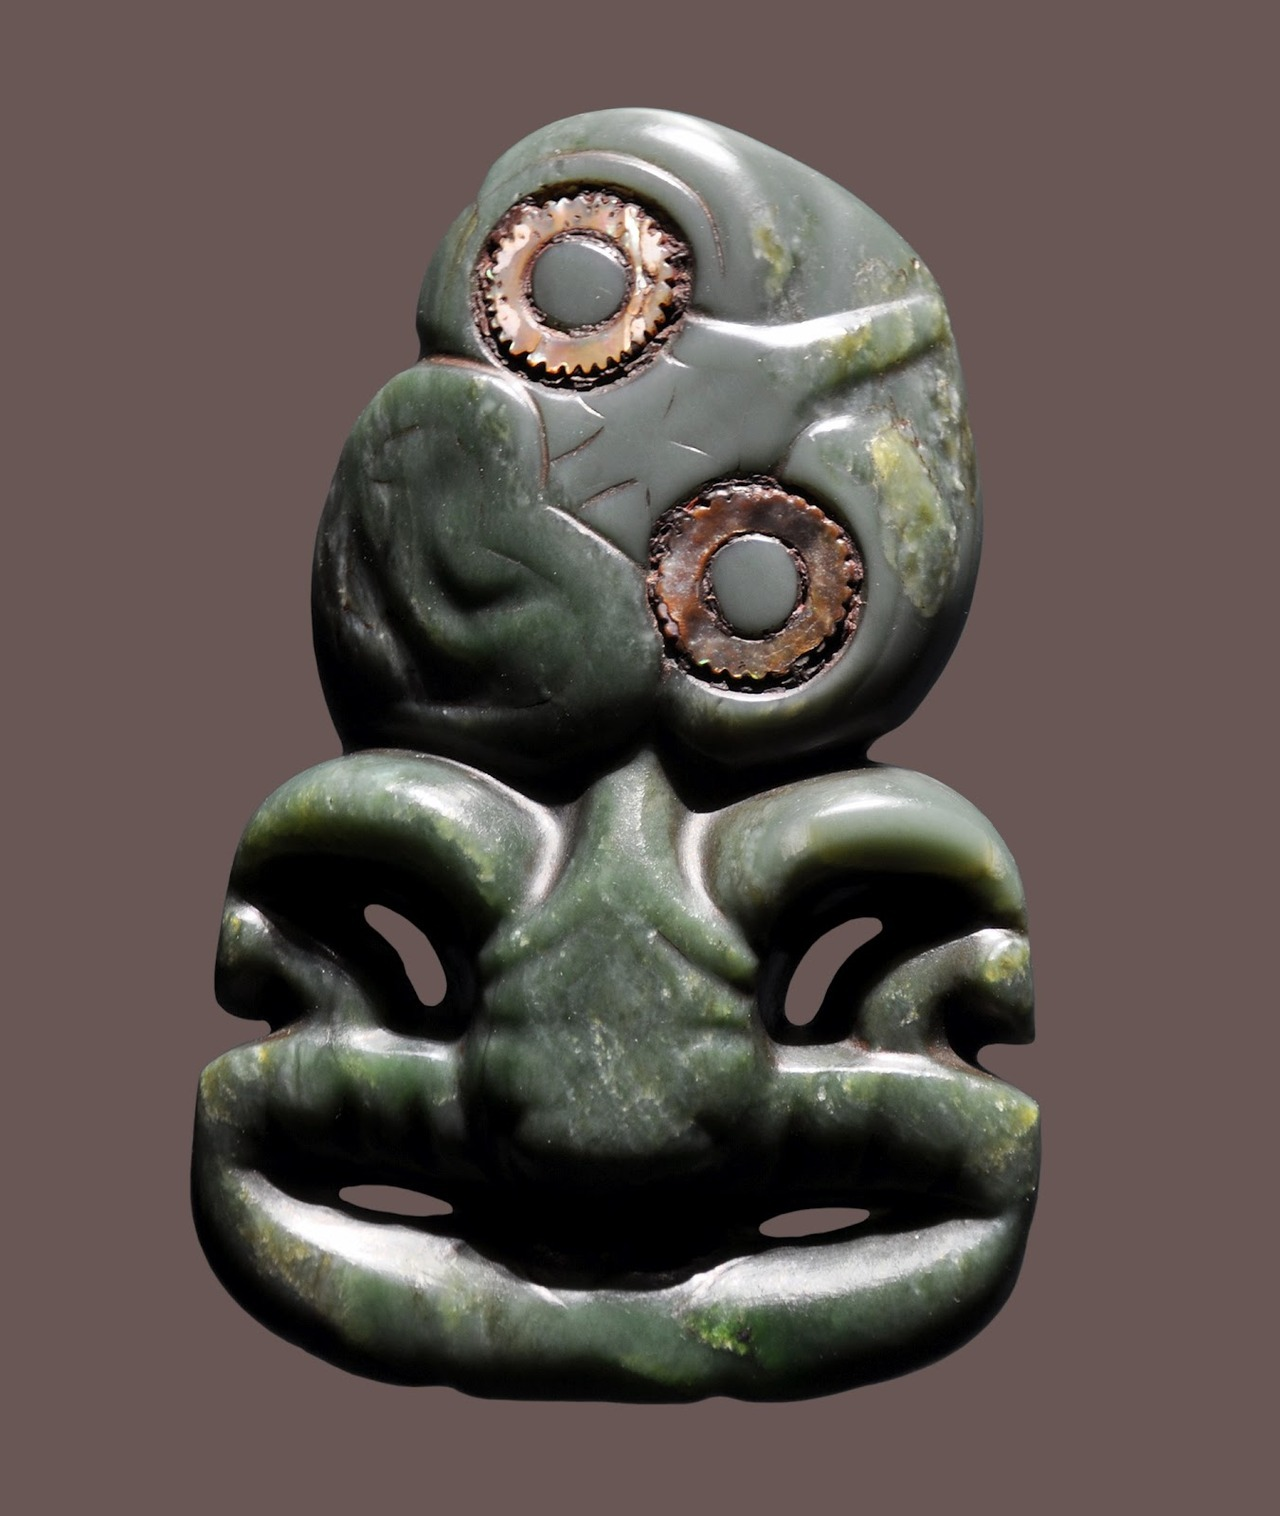 Maori greenstone pendant, New Zealand.